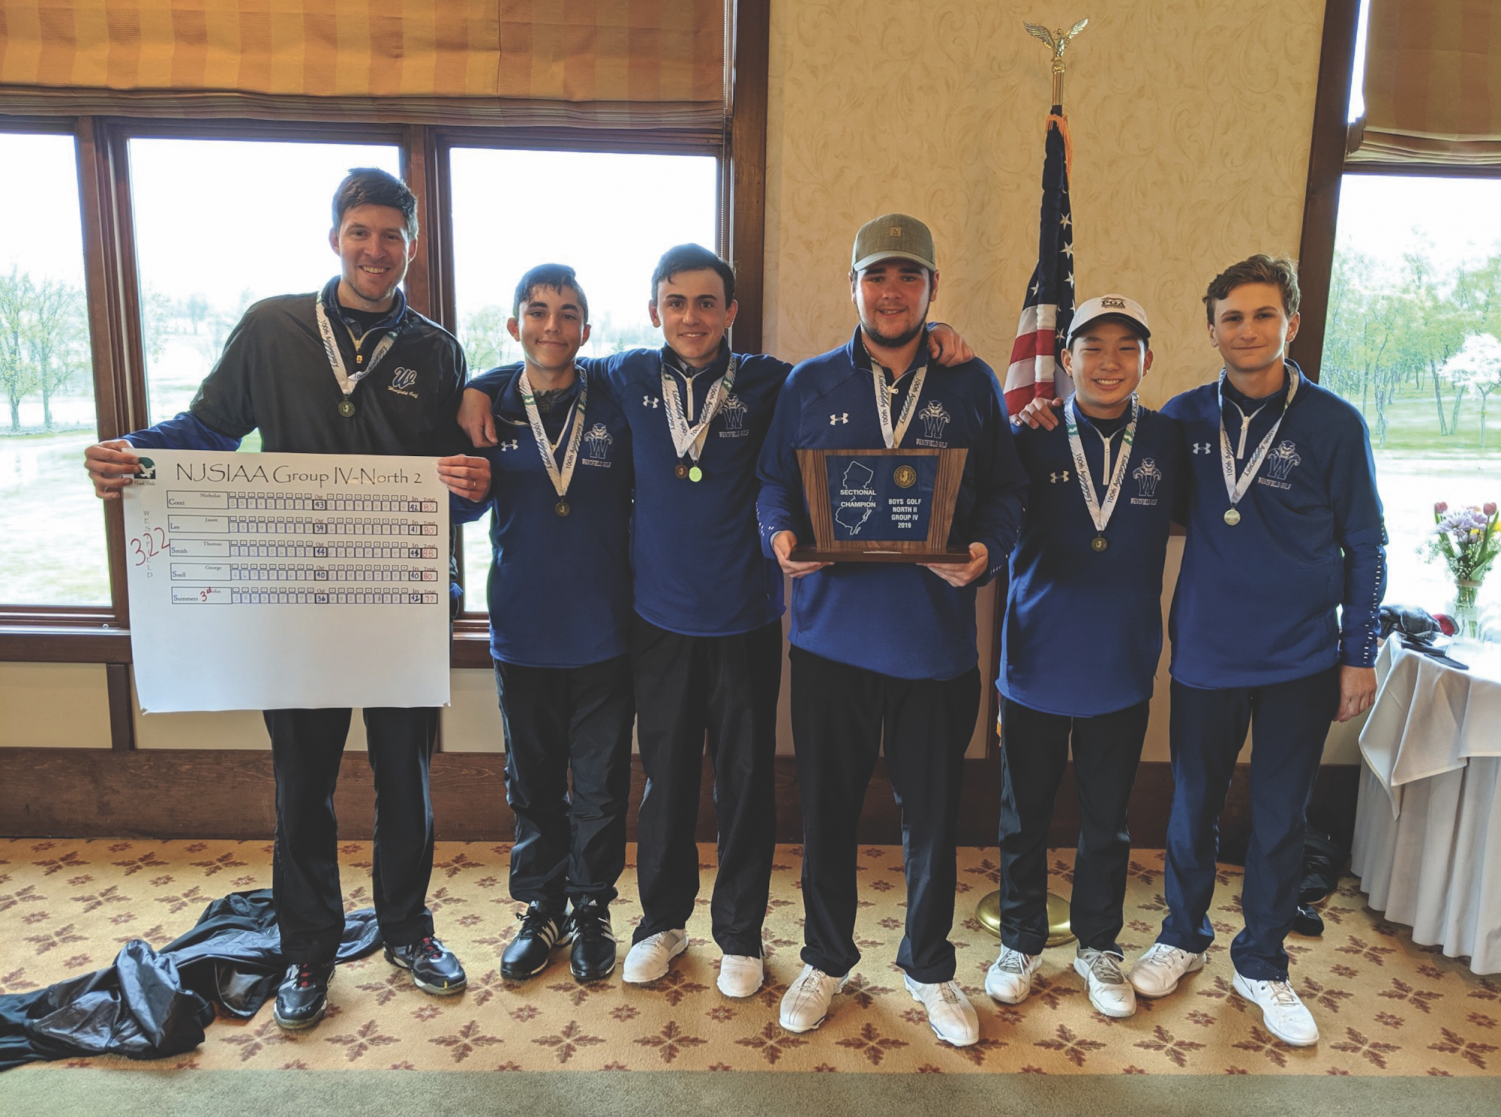 WHS golf team wins the sectional final